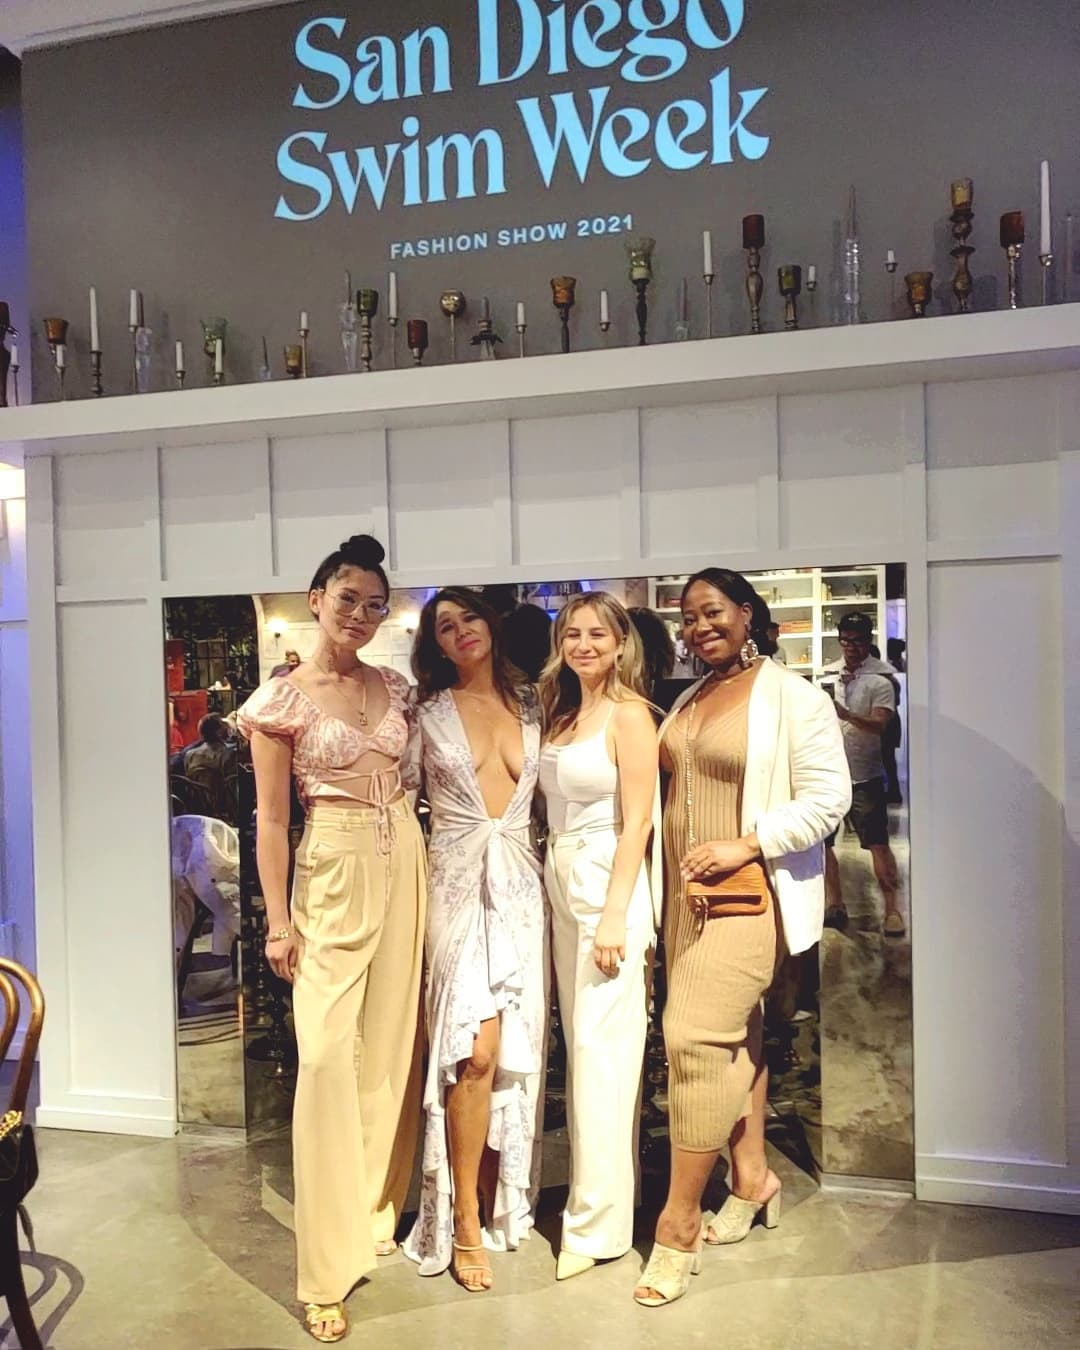 Had such a great time at @sdswimweek and I especially loved that it was body inclusive